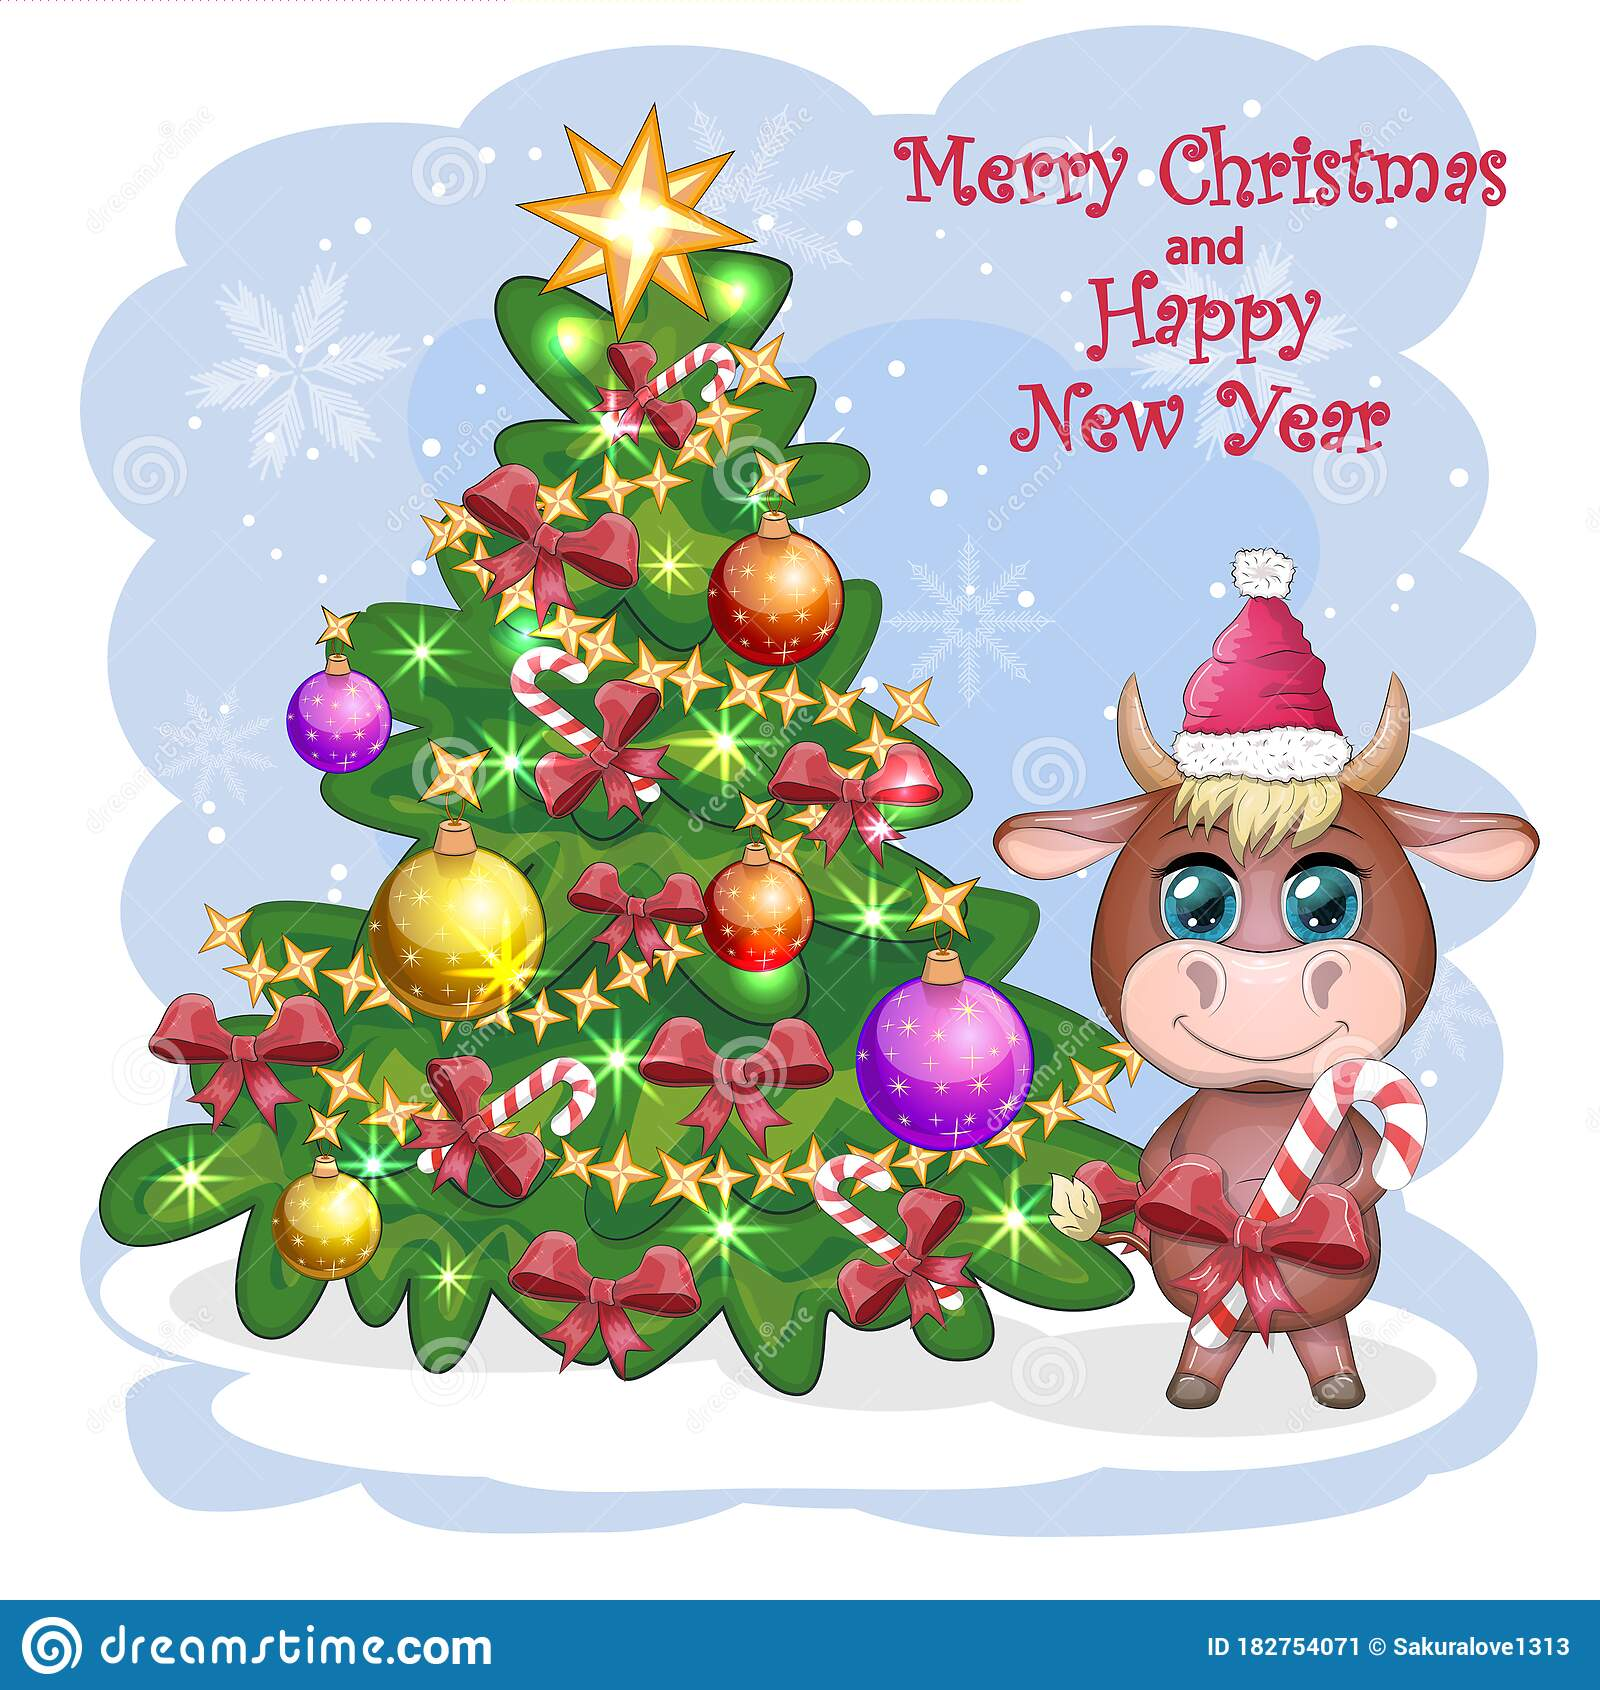 Funny Christmas Travel Greeting Cartoons 2021 Merry Christmas And Happy New Year Funny Cow In Red Hat With Gift In Cartoon Style Greeting Card Stock Image Image Of Label Graphic 182754071